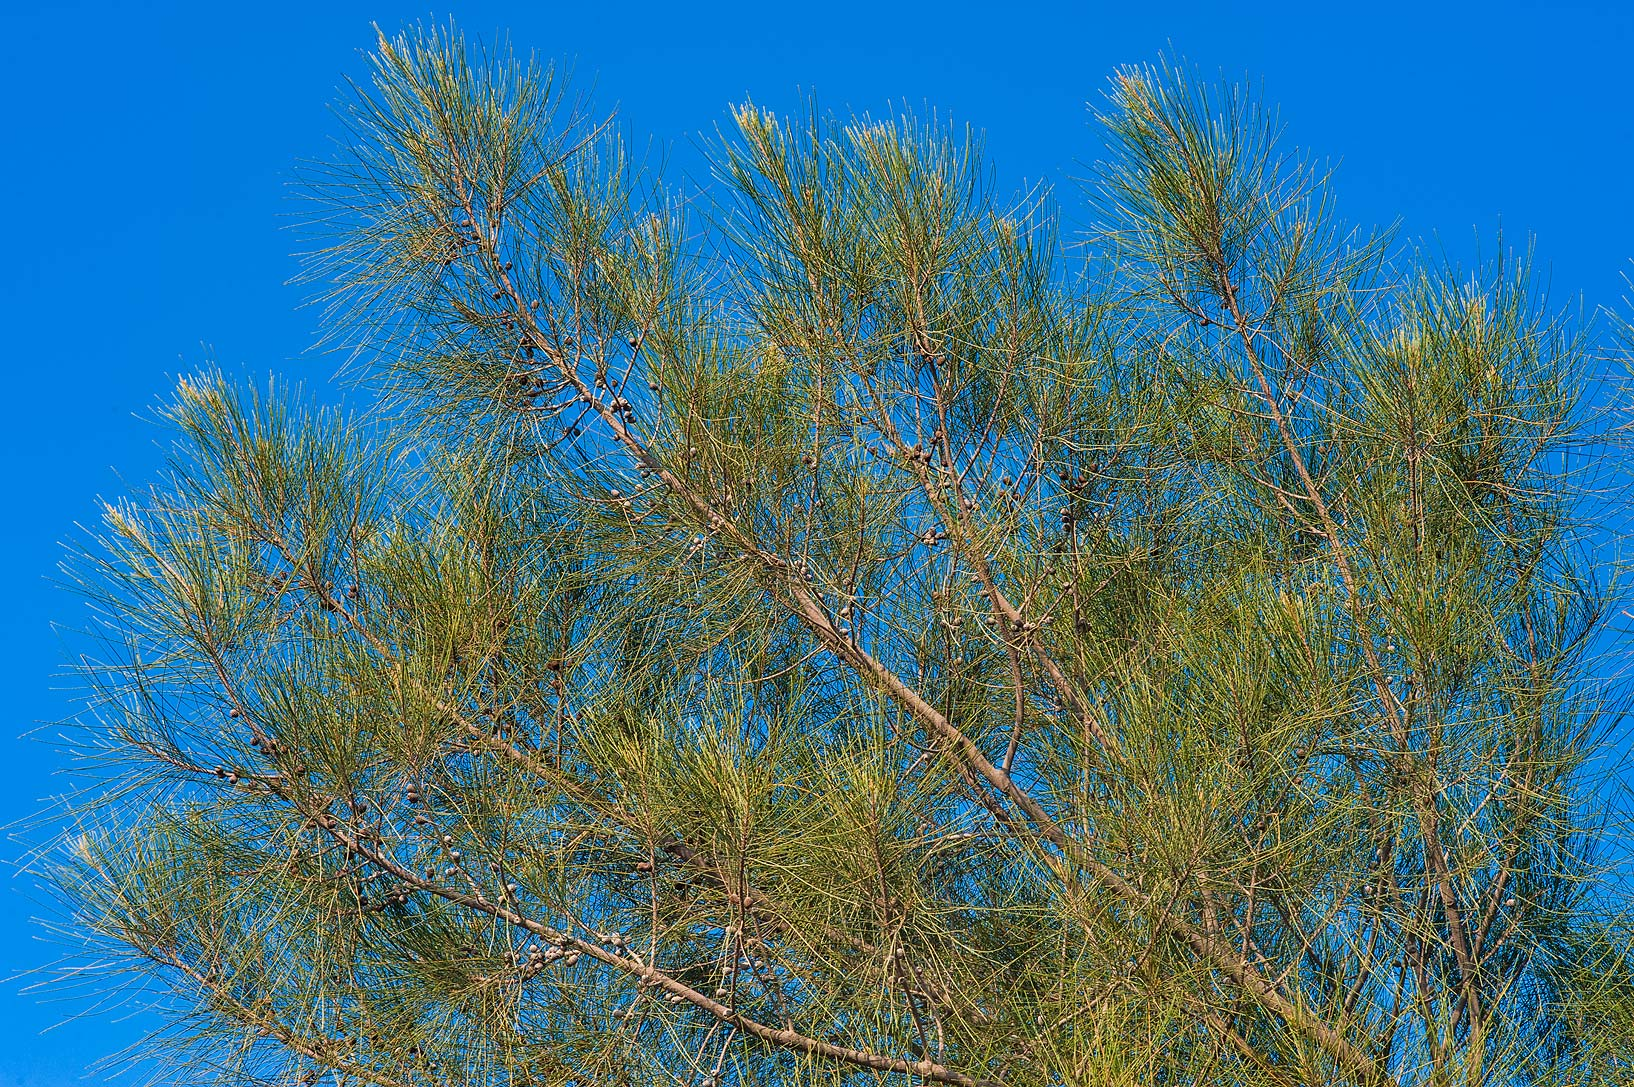 Needle-like foliage of Australian pine tree (she...City Park. Ruwais, Northern Qatar